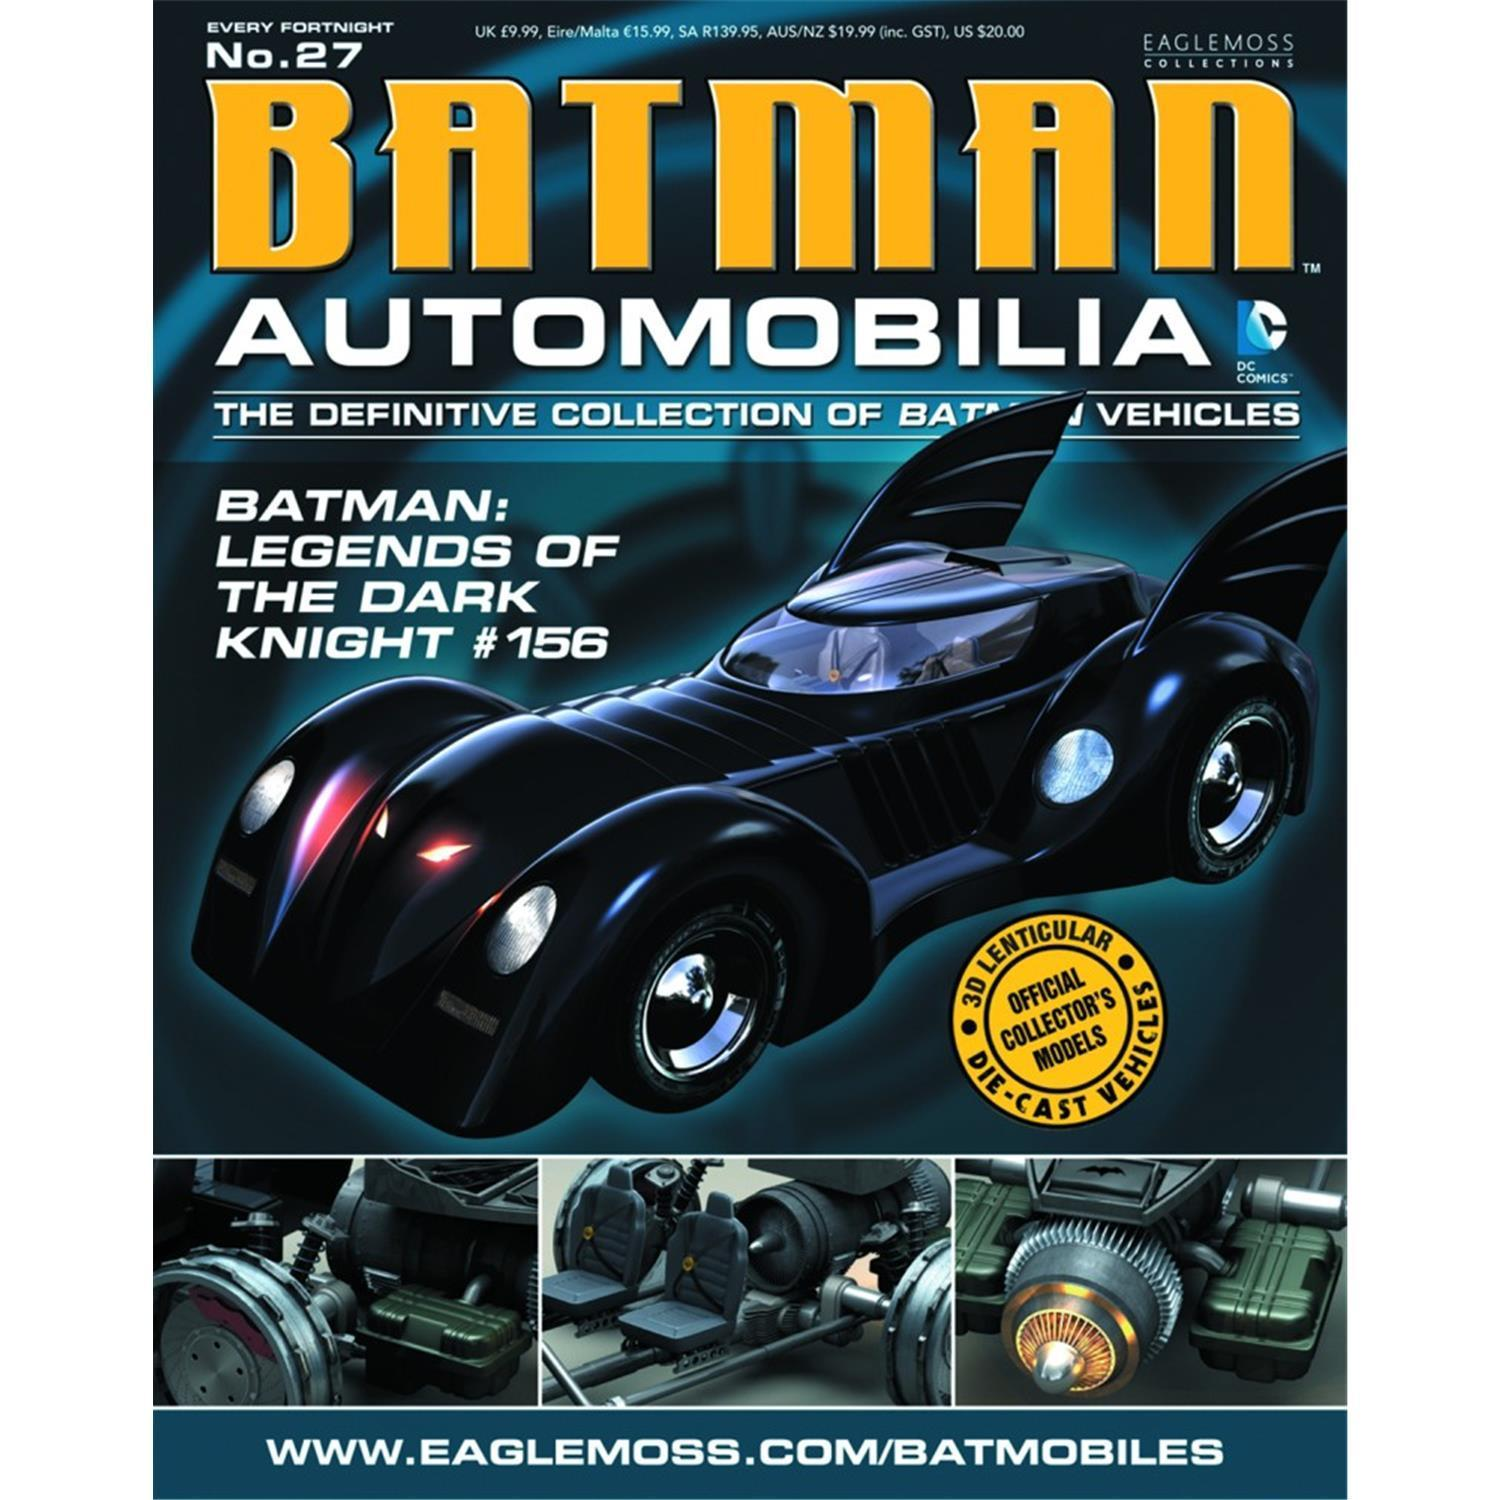 Photo du produit BATMAN AUTOMOBILIA MAGAZINE AVEC VEHICULE 1/43 BATMOBILE (LEGENDS OF THE DARK KNIGHT)